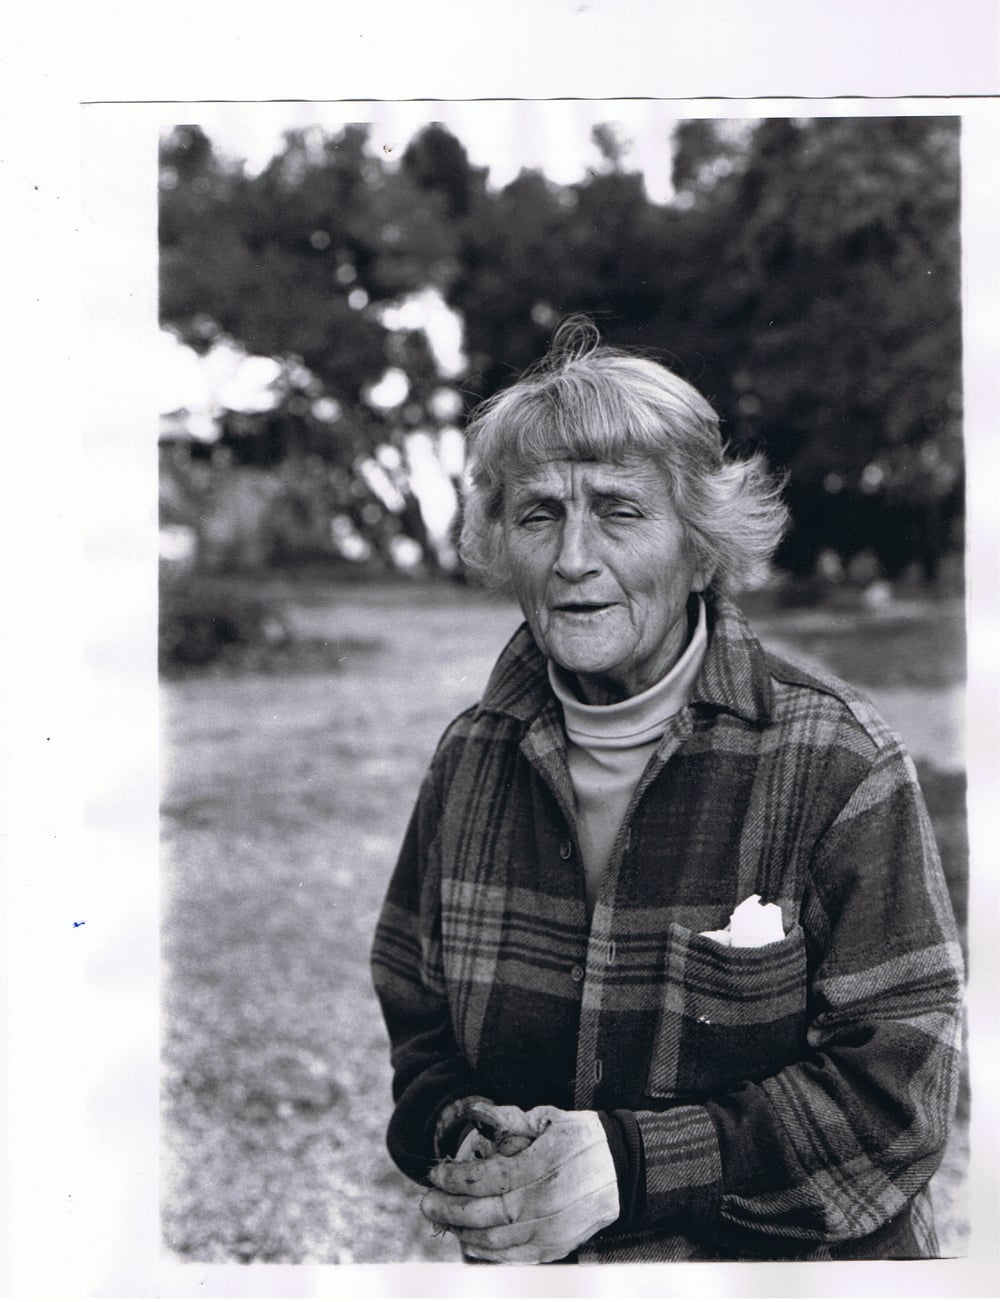 AGNES BARON (1907-1994) at Meher Mount, probably sometime in the 1970s.